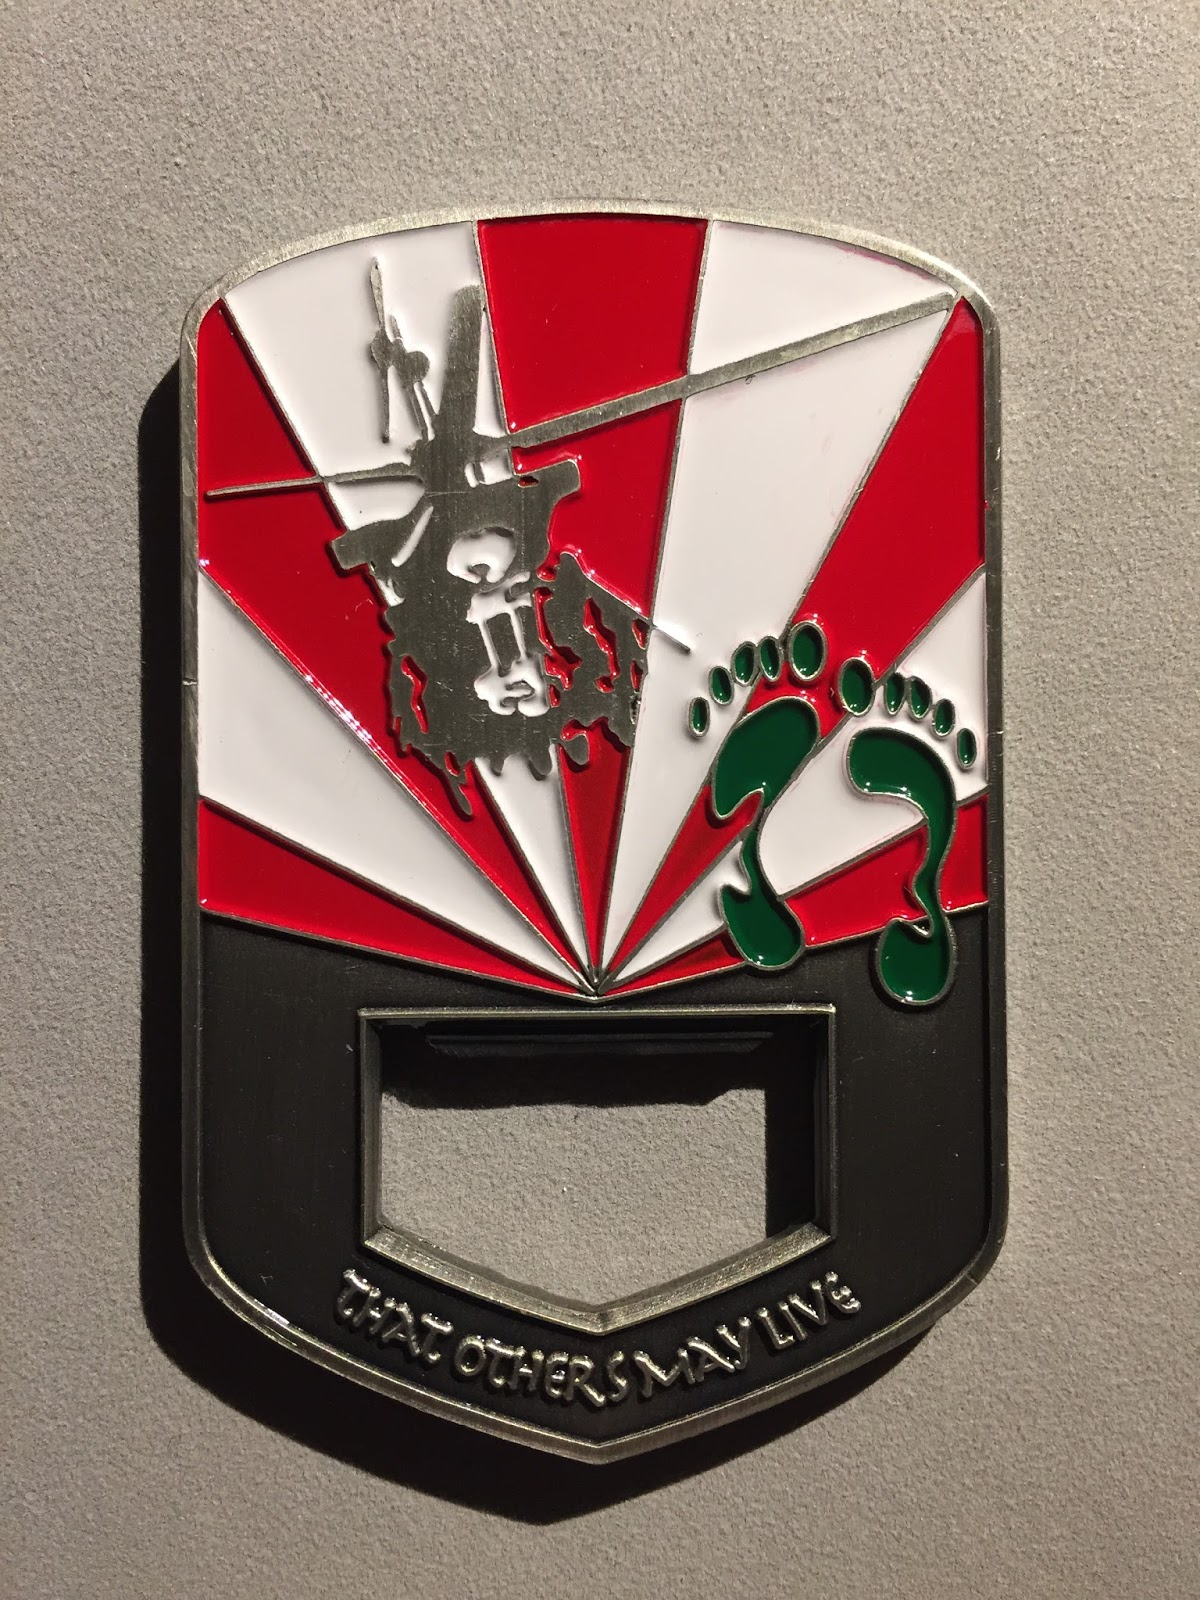 THE USAF RESCUE COLLECTION: USAF 33rd RQS Challenge Coin - Bottle Opener